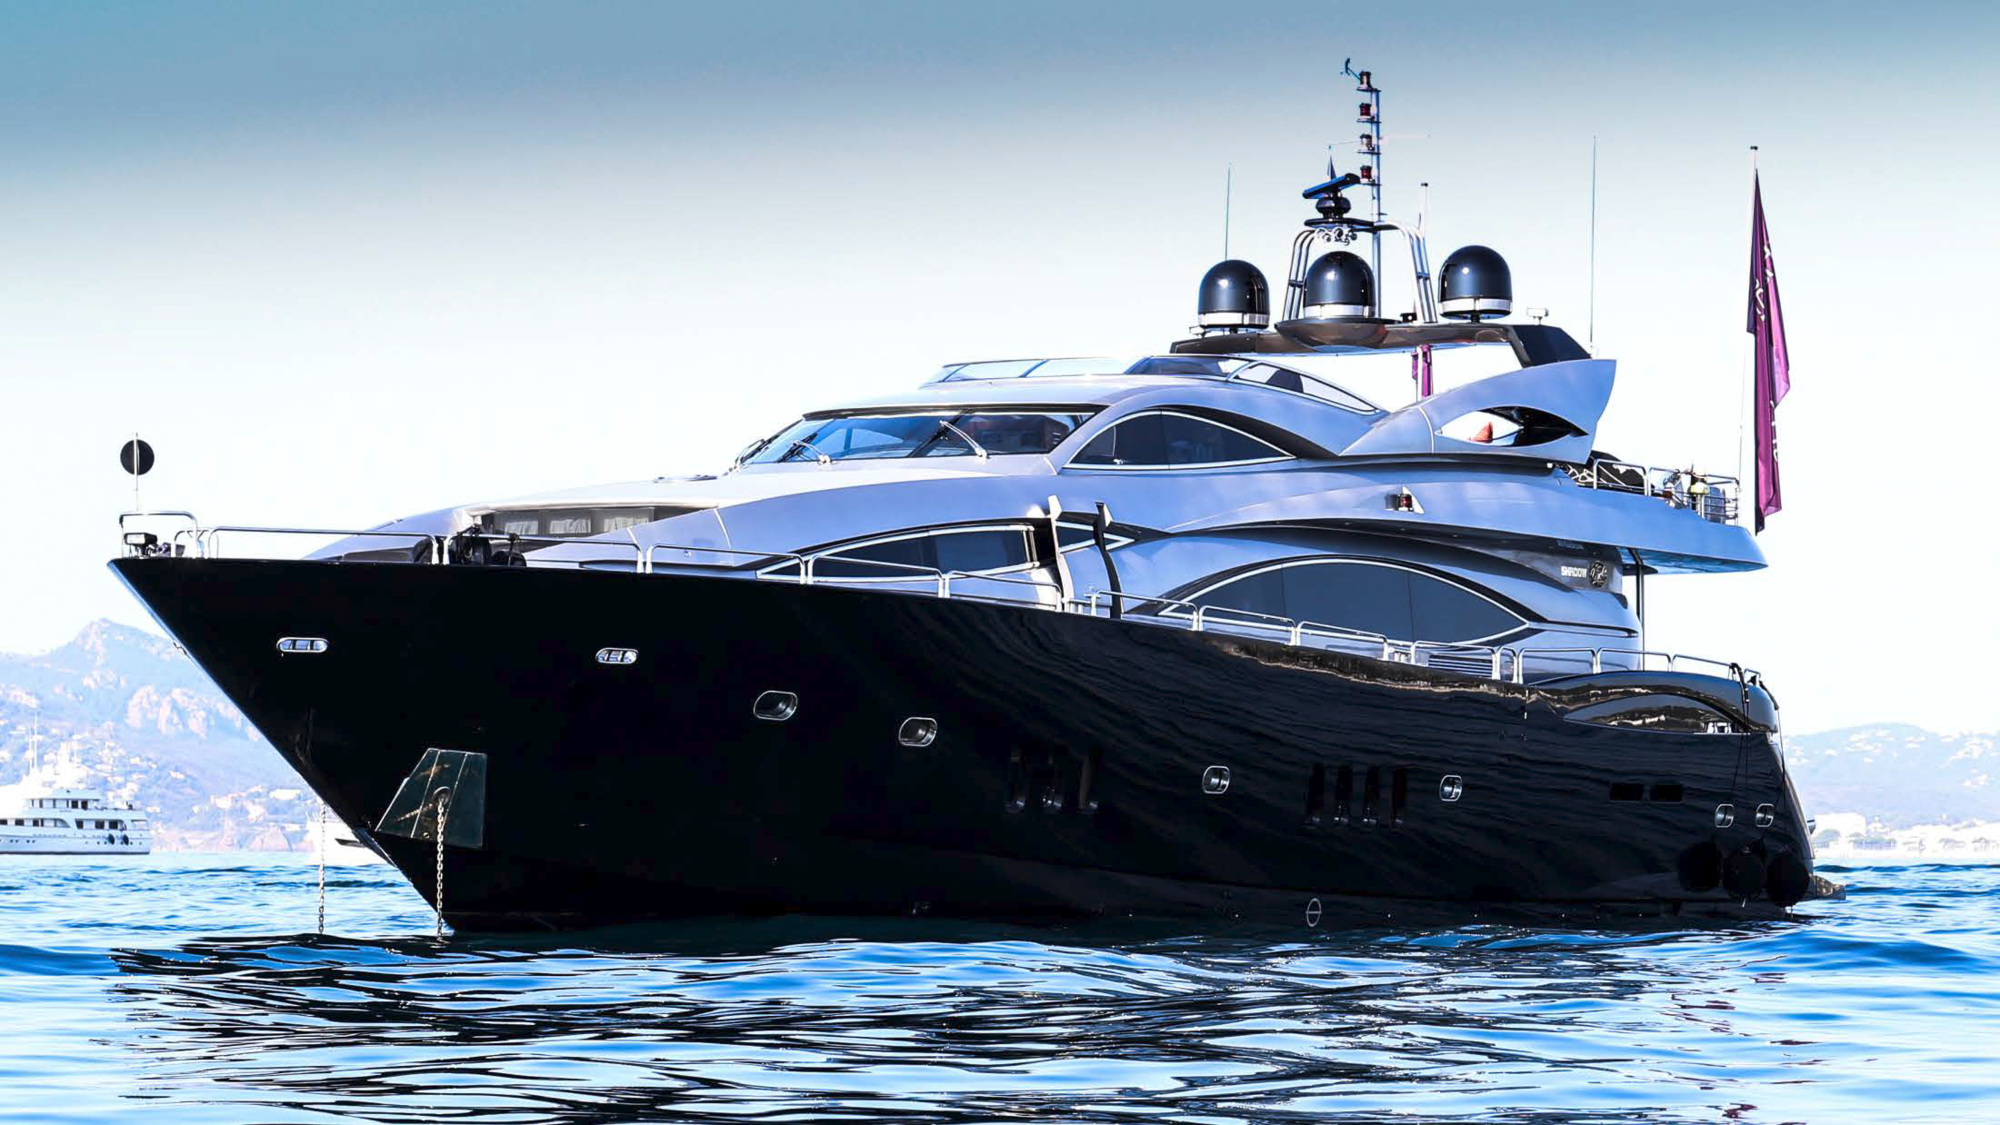 Italy yacht charter - choose your charter area! - AM Charter